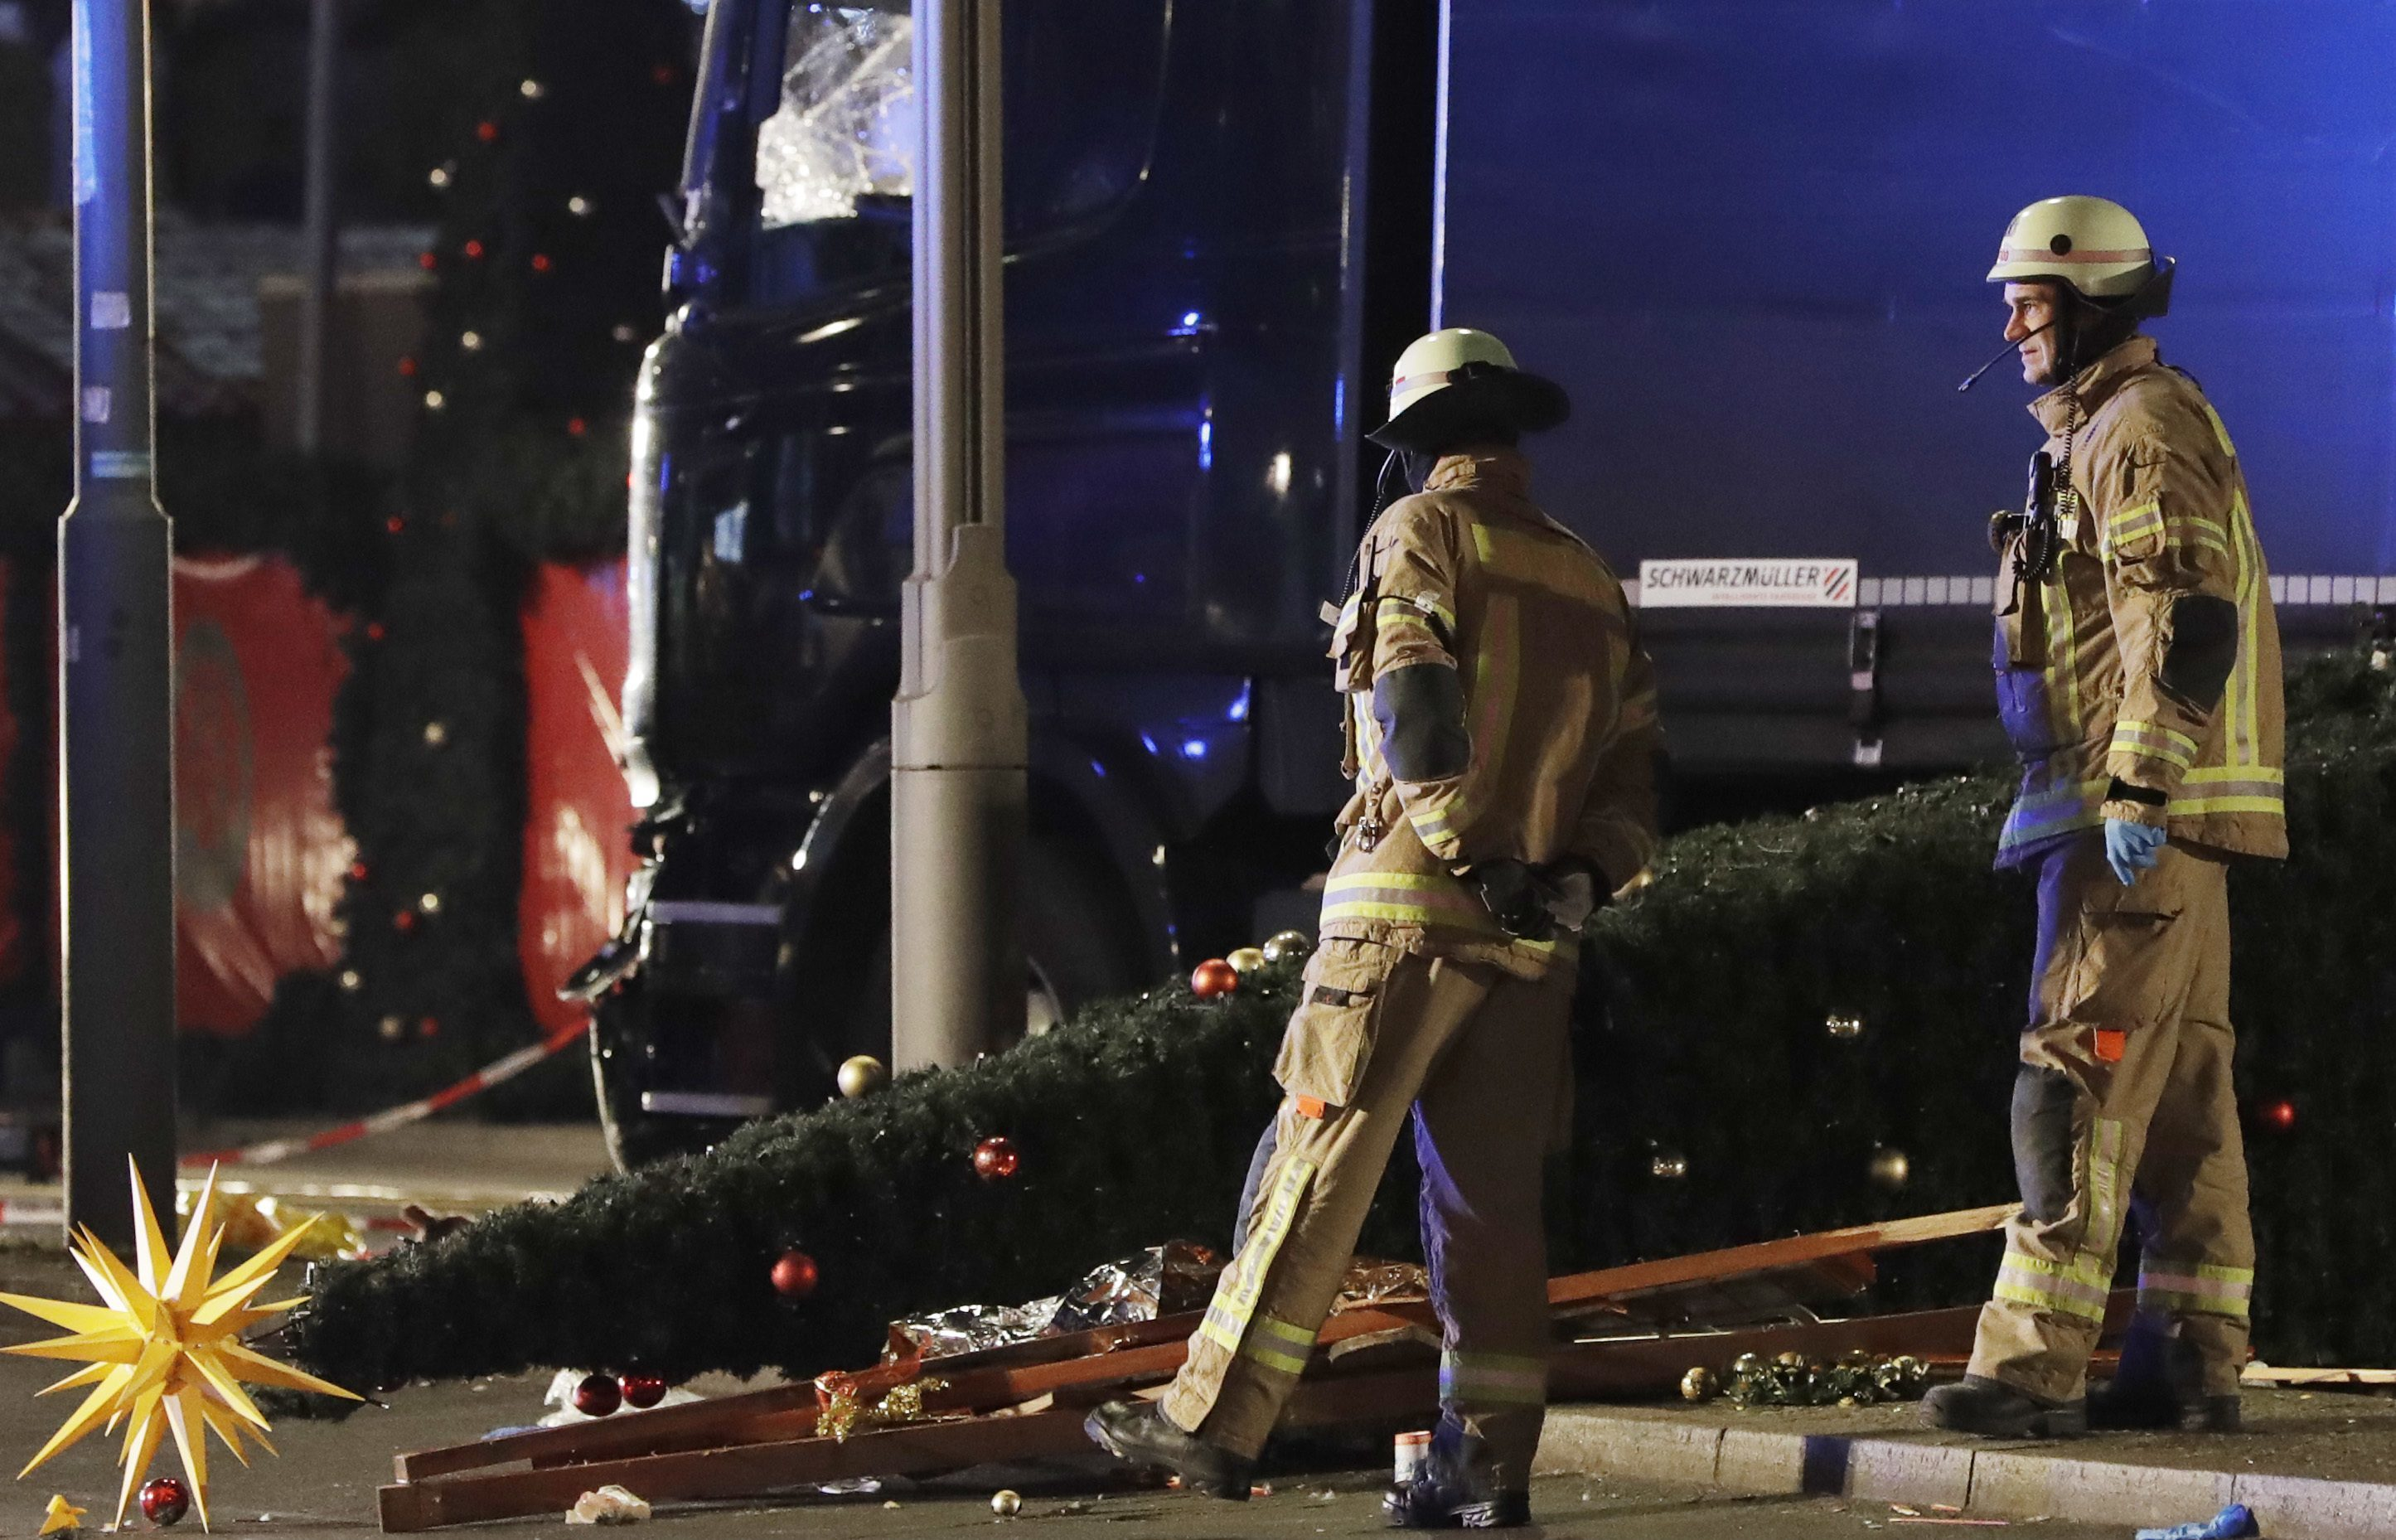 Emergency workers examine the lorry and a Christmas tree toppled by the impact.